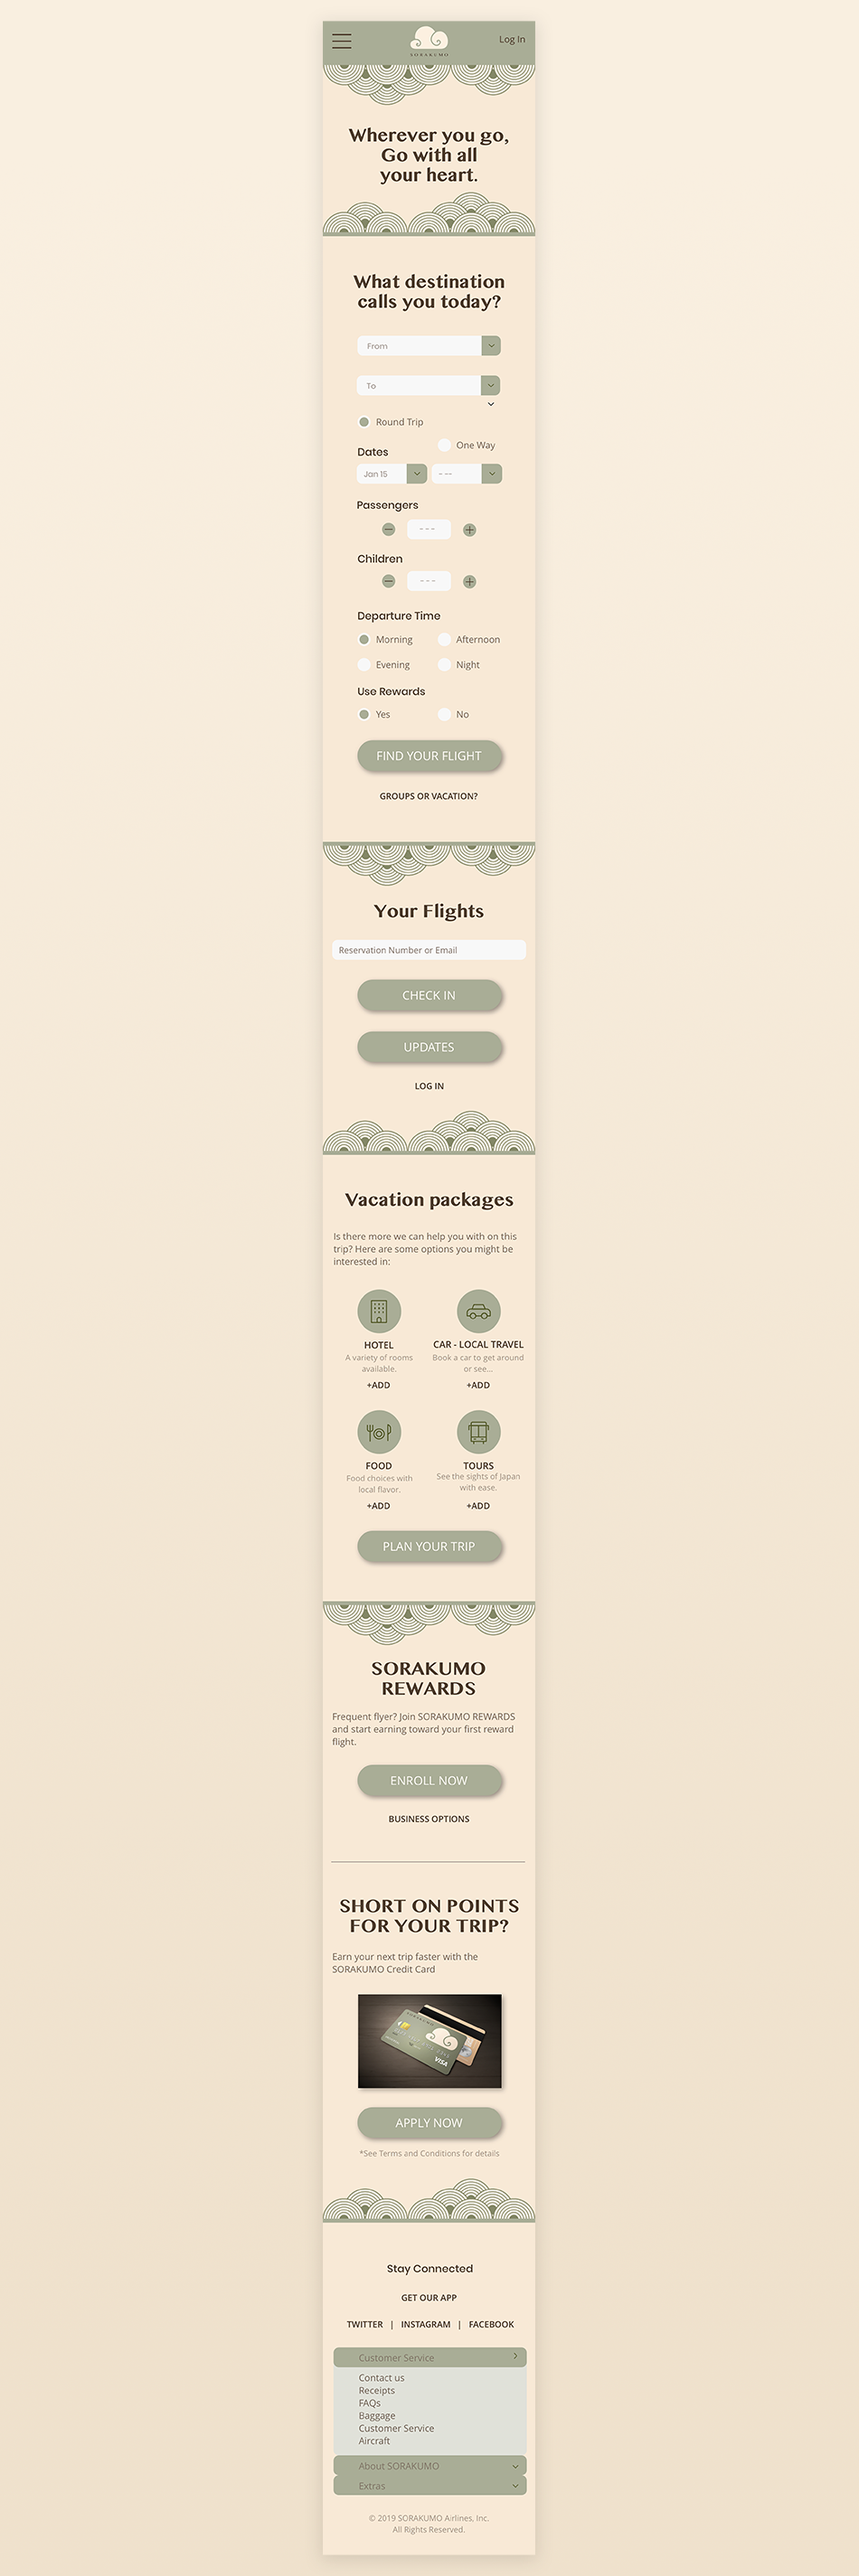 Mobile version of homepage